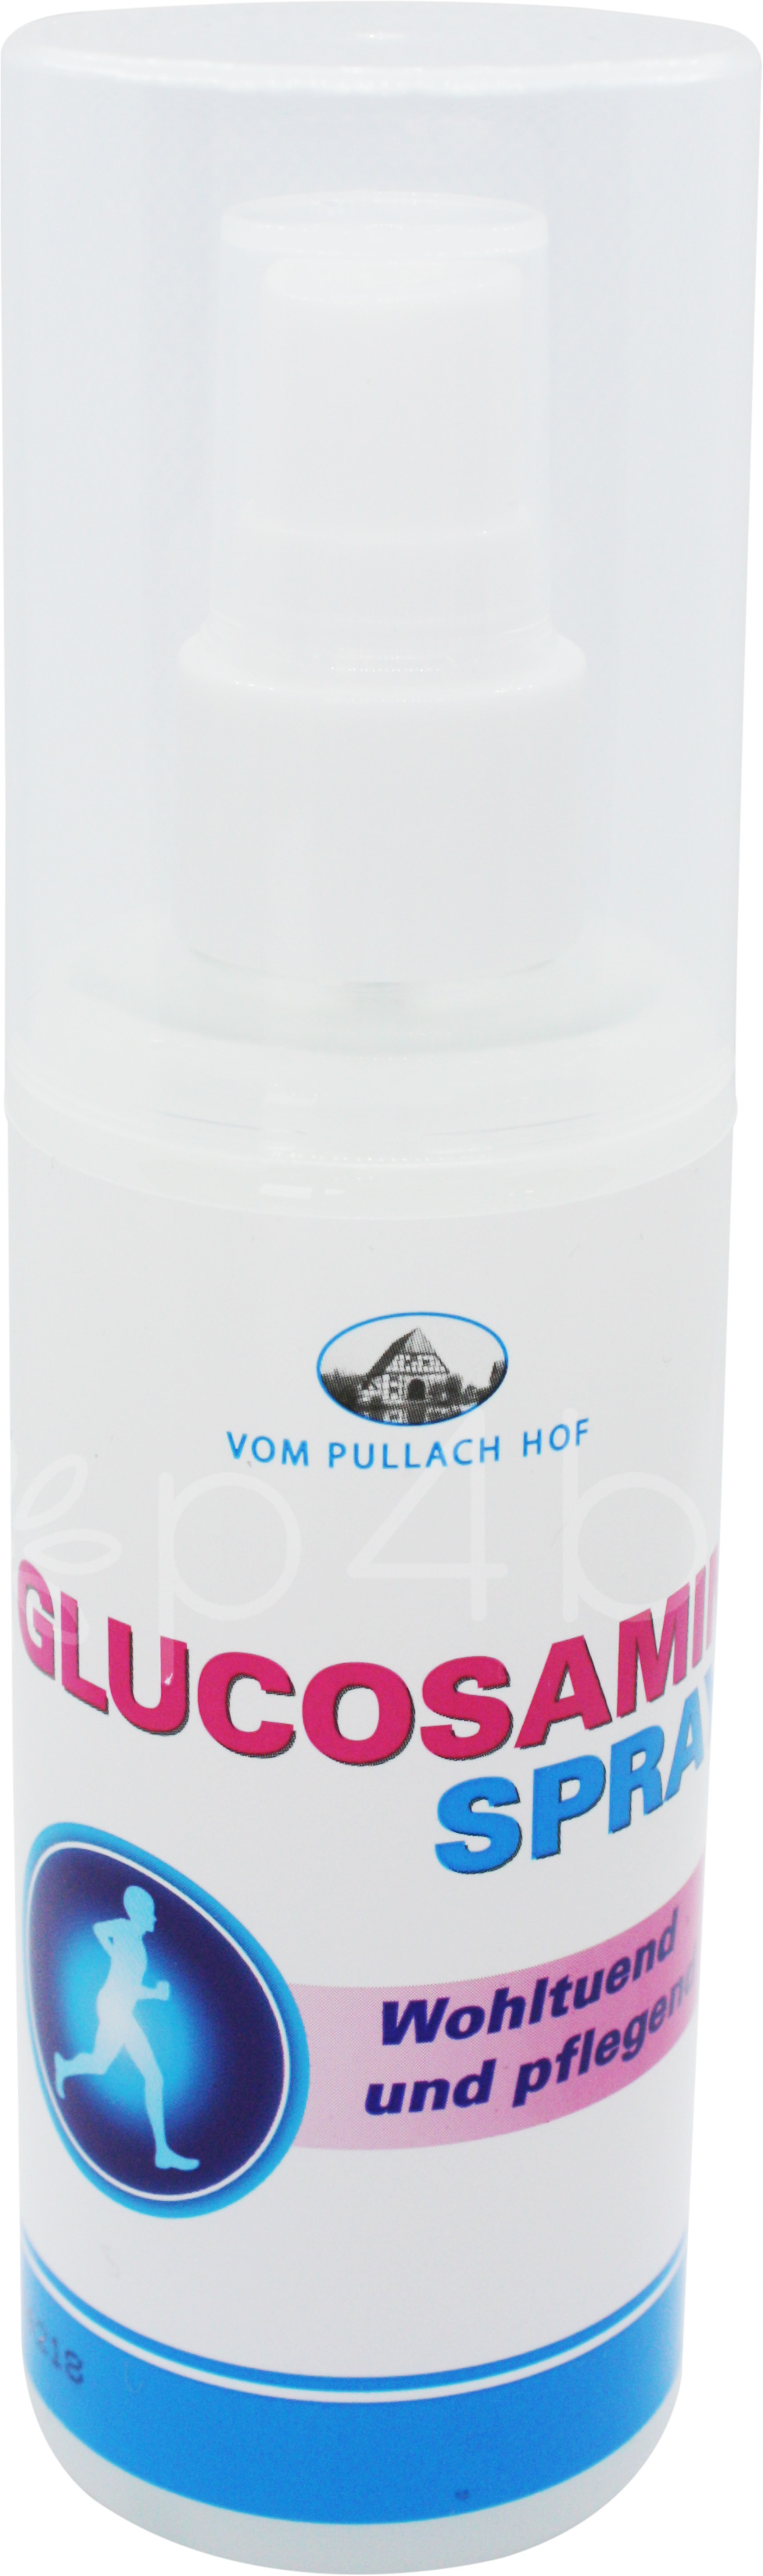 glucosamin-spray-100-ml.jpg